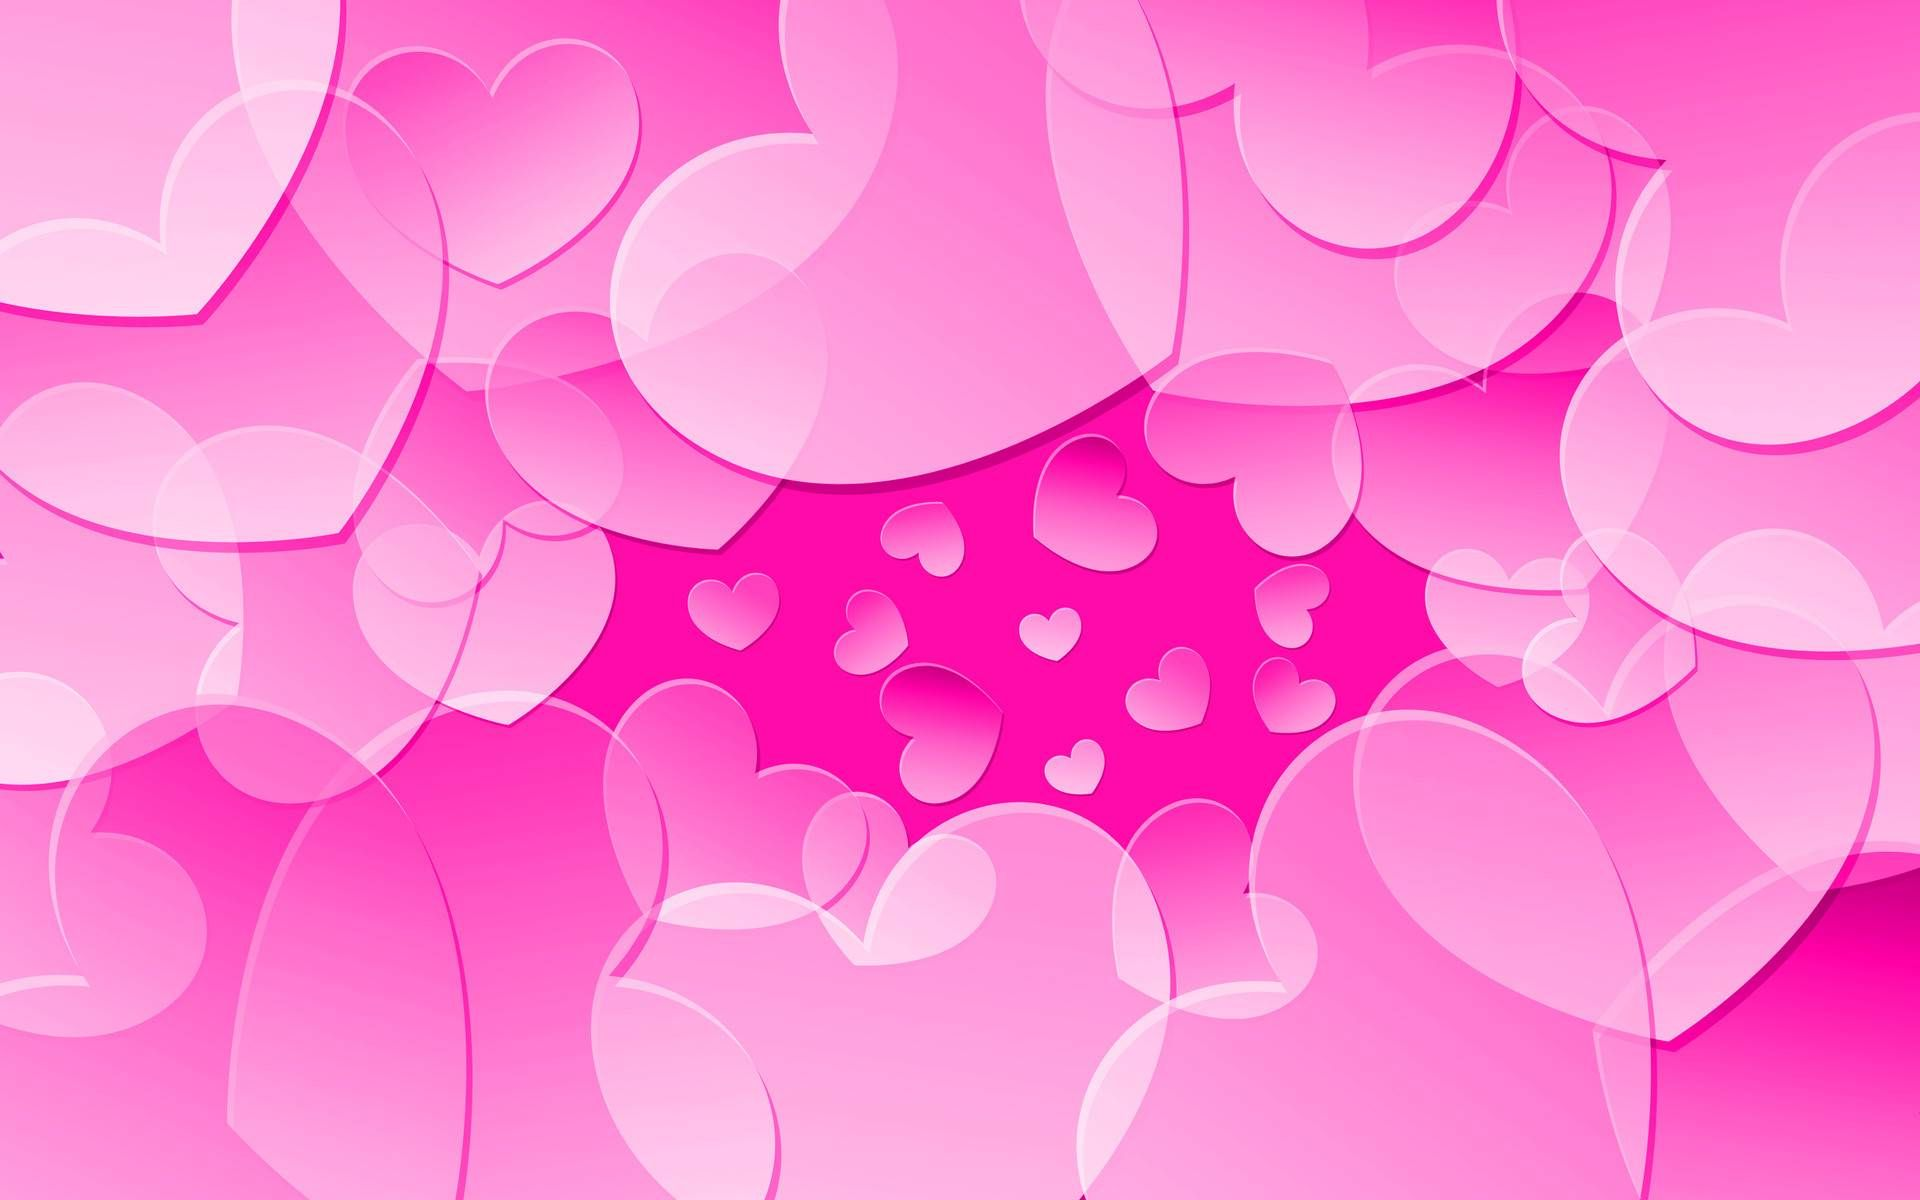 Heart wallpaper android apps on google play 19201080 heart pics heart wallpaper android apps on google play 19201080 heart pics adorable wallpapers voltagebd Choice Image